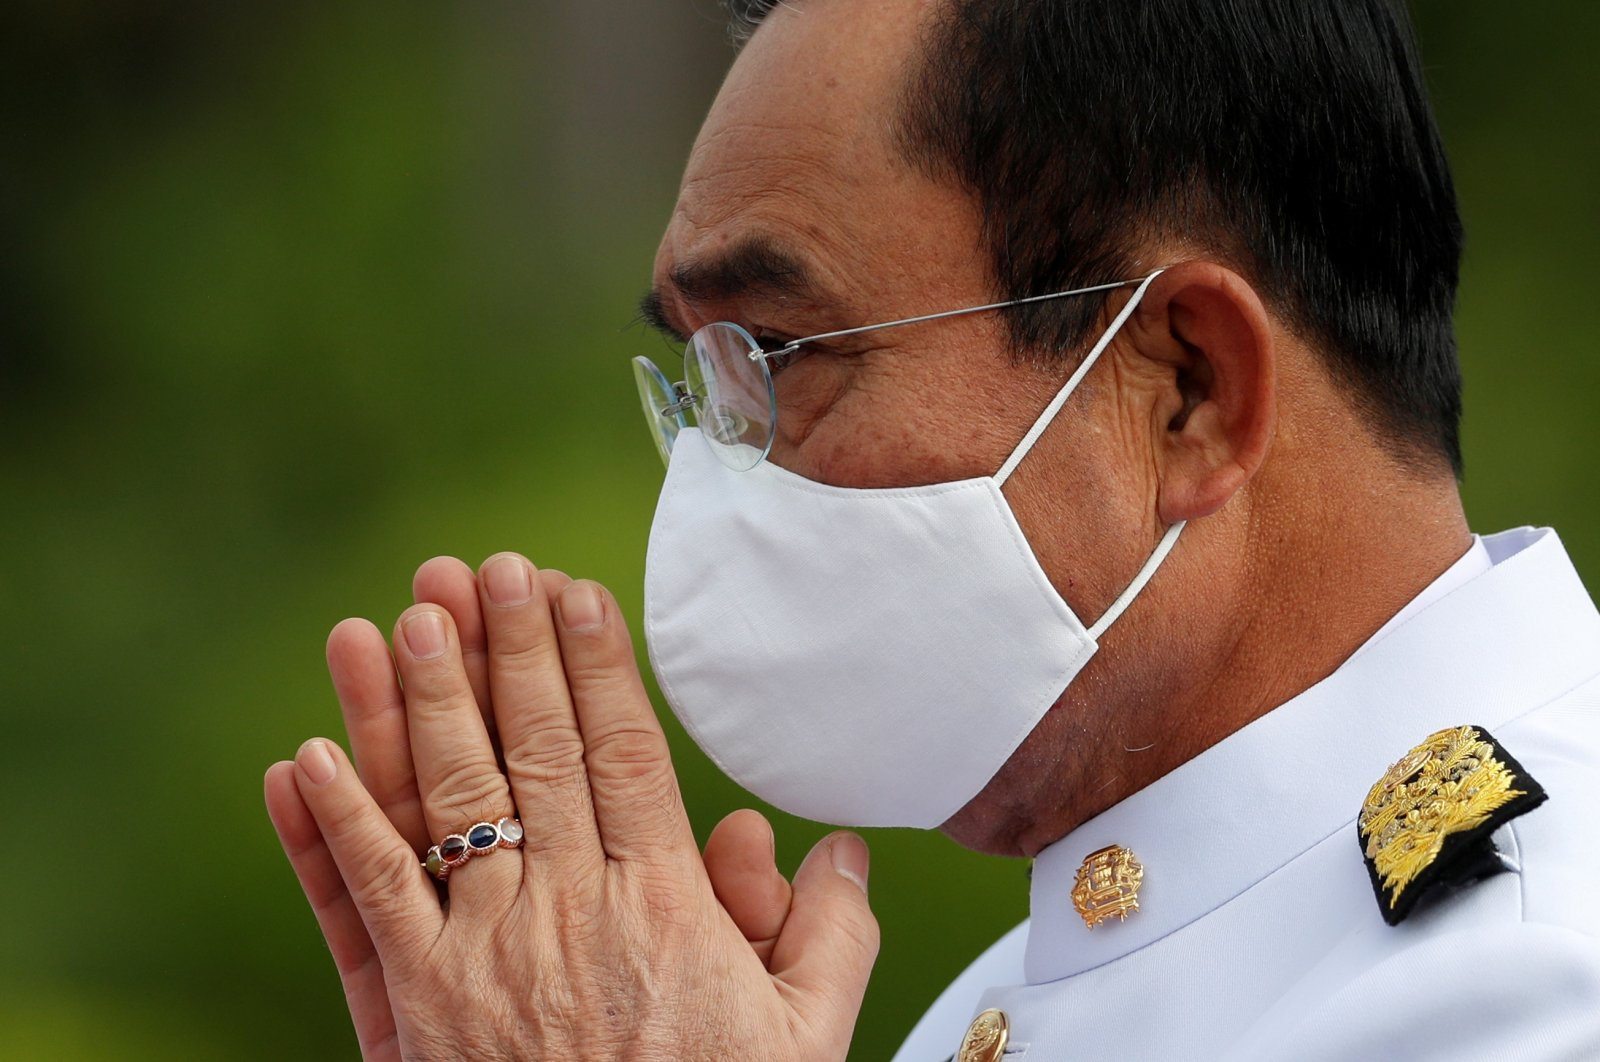 Thailand's Prime Minister Prayuth Chan-ocha, wearing a face mask, attends a family photo session with new cabinet ministers at the Government House in Bangkok, Thailand, Aug. 13, 2020. (Reuters Photo)